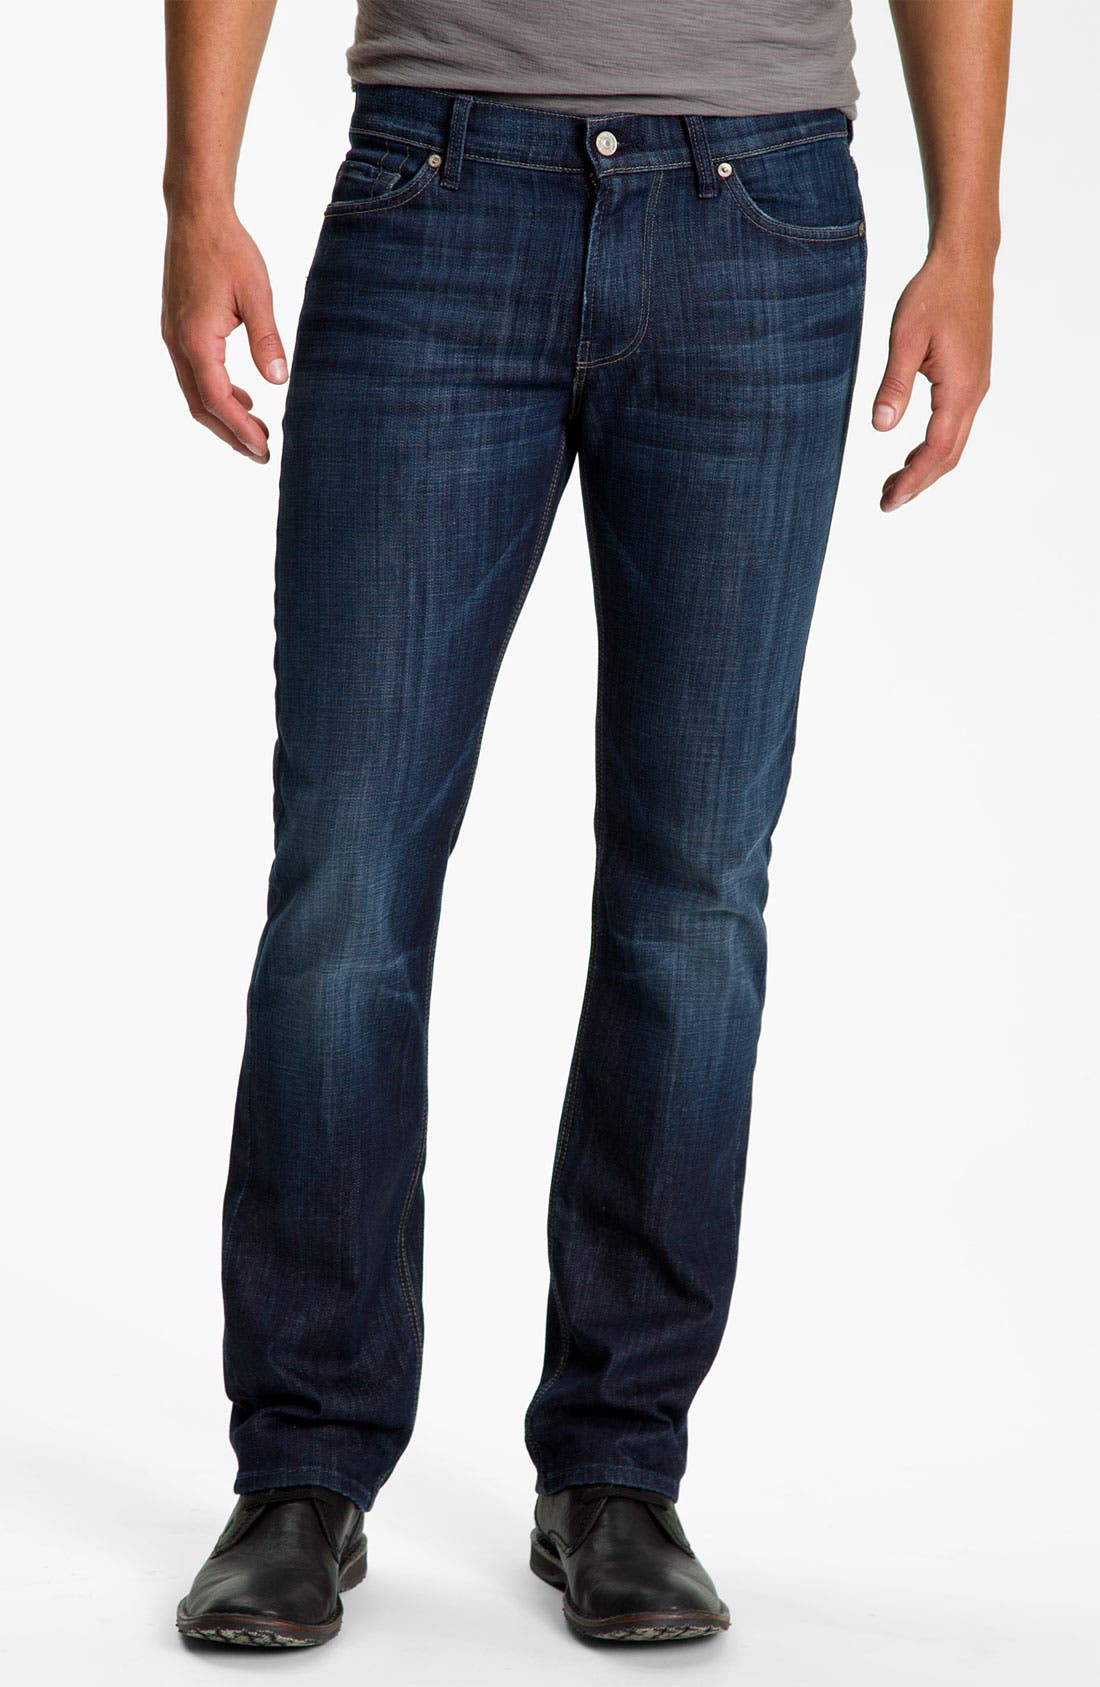 7 FOR ALL MANKIND<SUP>®</SUP>, Slimmy Slim Fit Jeans, Main thumbnail 1, color, LOS ANGELES DARK